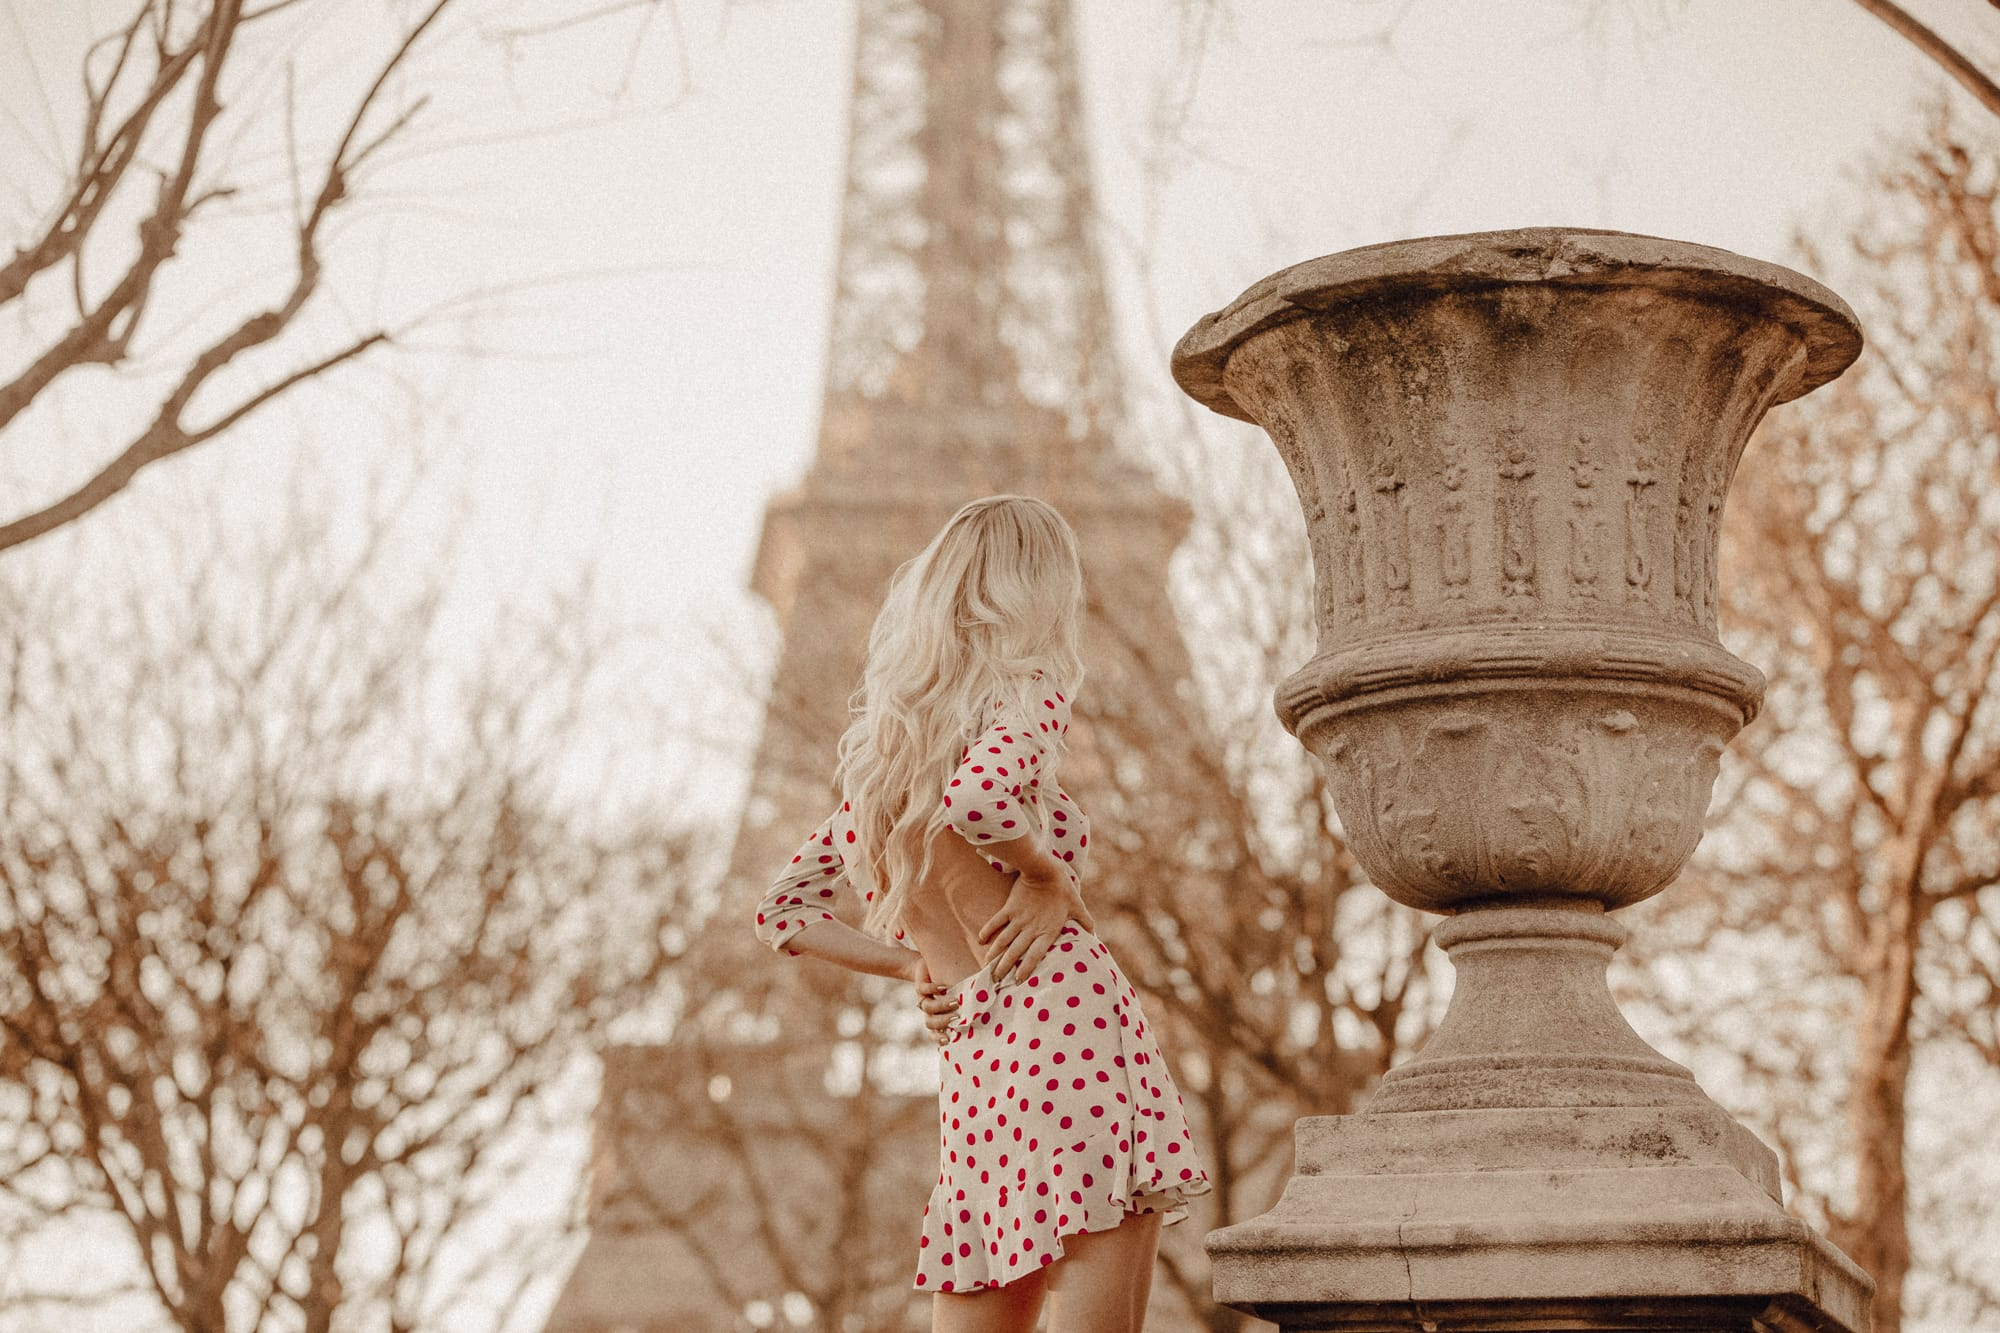 Sarah Loven, Jetset Lust, Eiffel Tower Paris